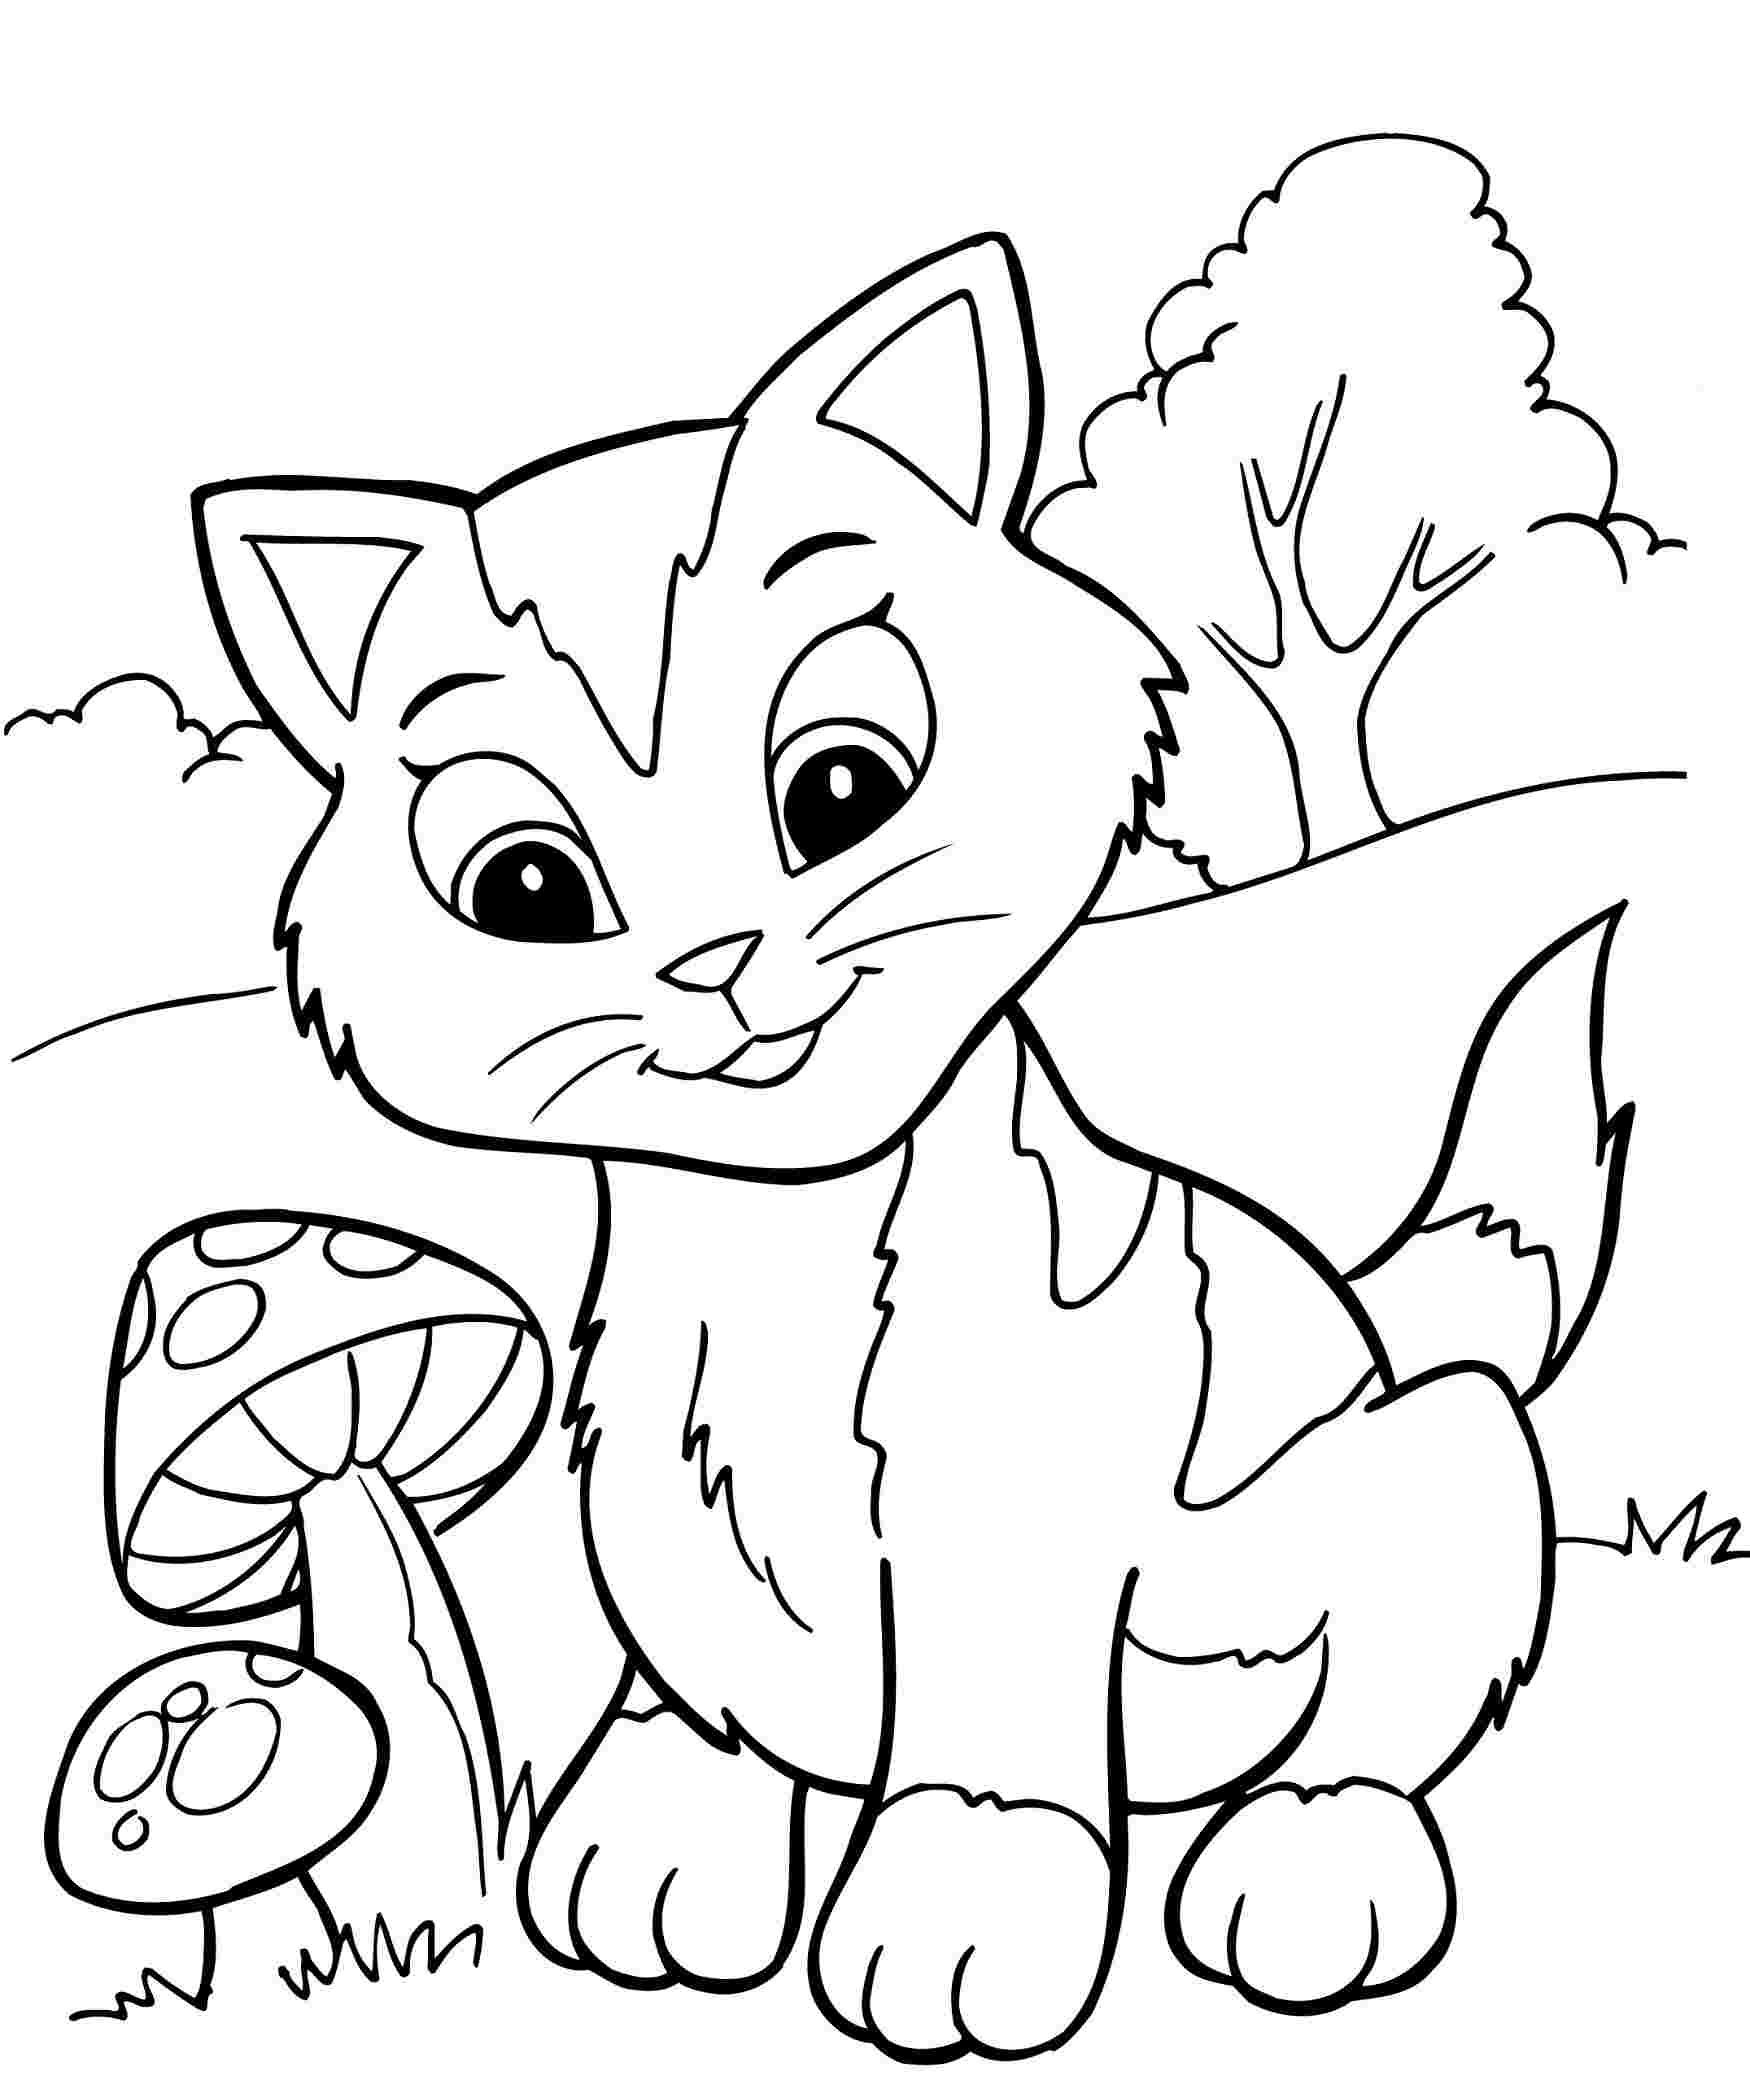 Coloring Festival Kitten Coloring Book Pages More Than 100